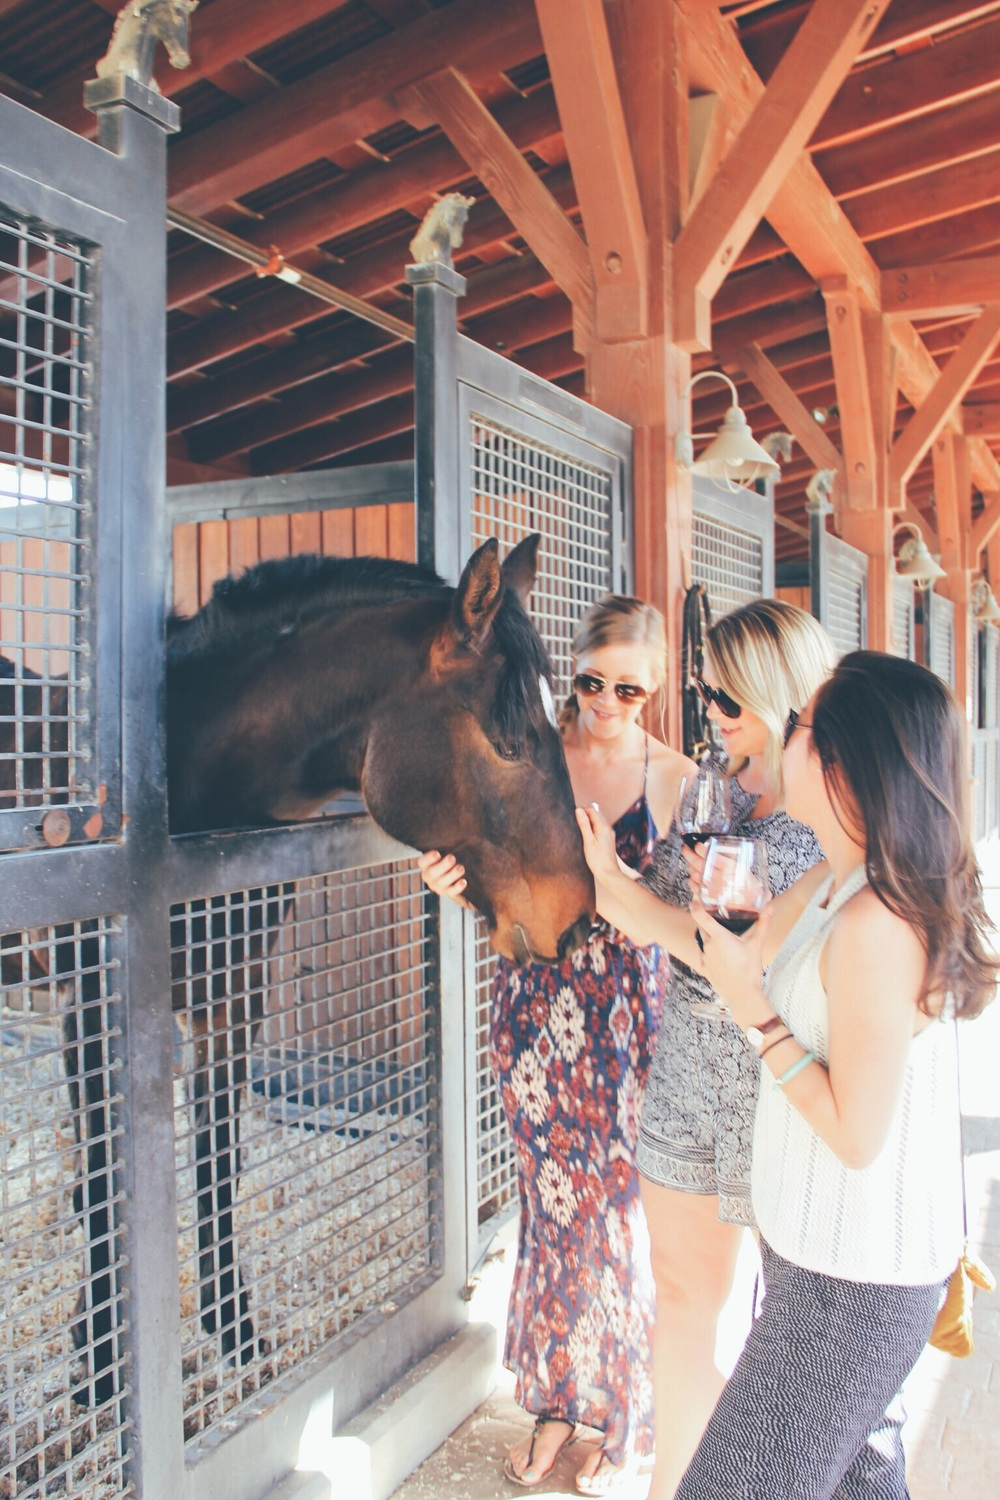 Meeting Woody at Tamber Bey Vineyards was the perfect end to our perfect day in Calistoga